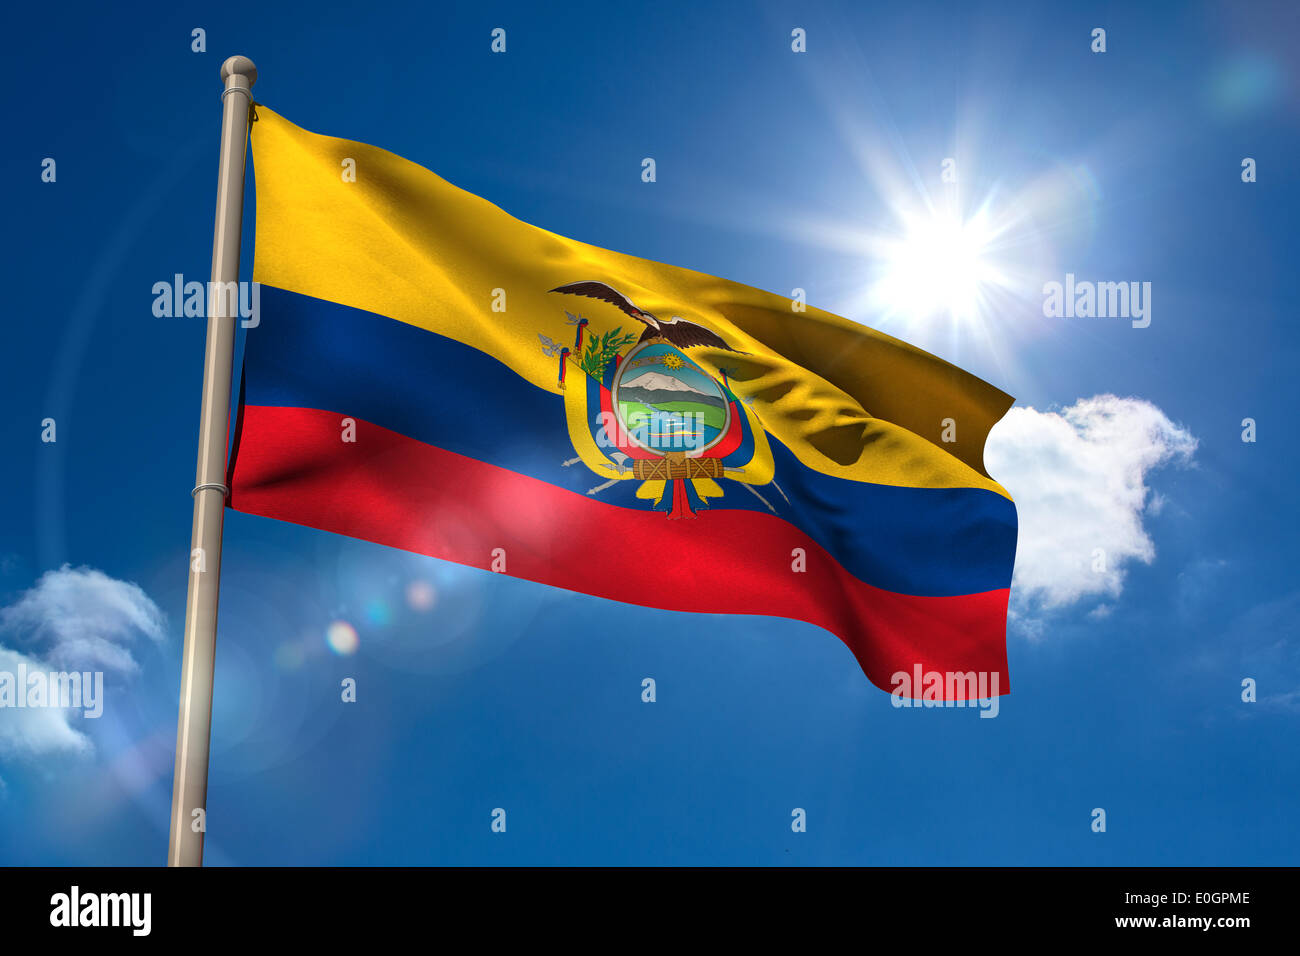 Ecuador national flag on flagpole - Stock Image